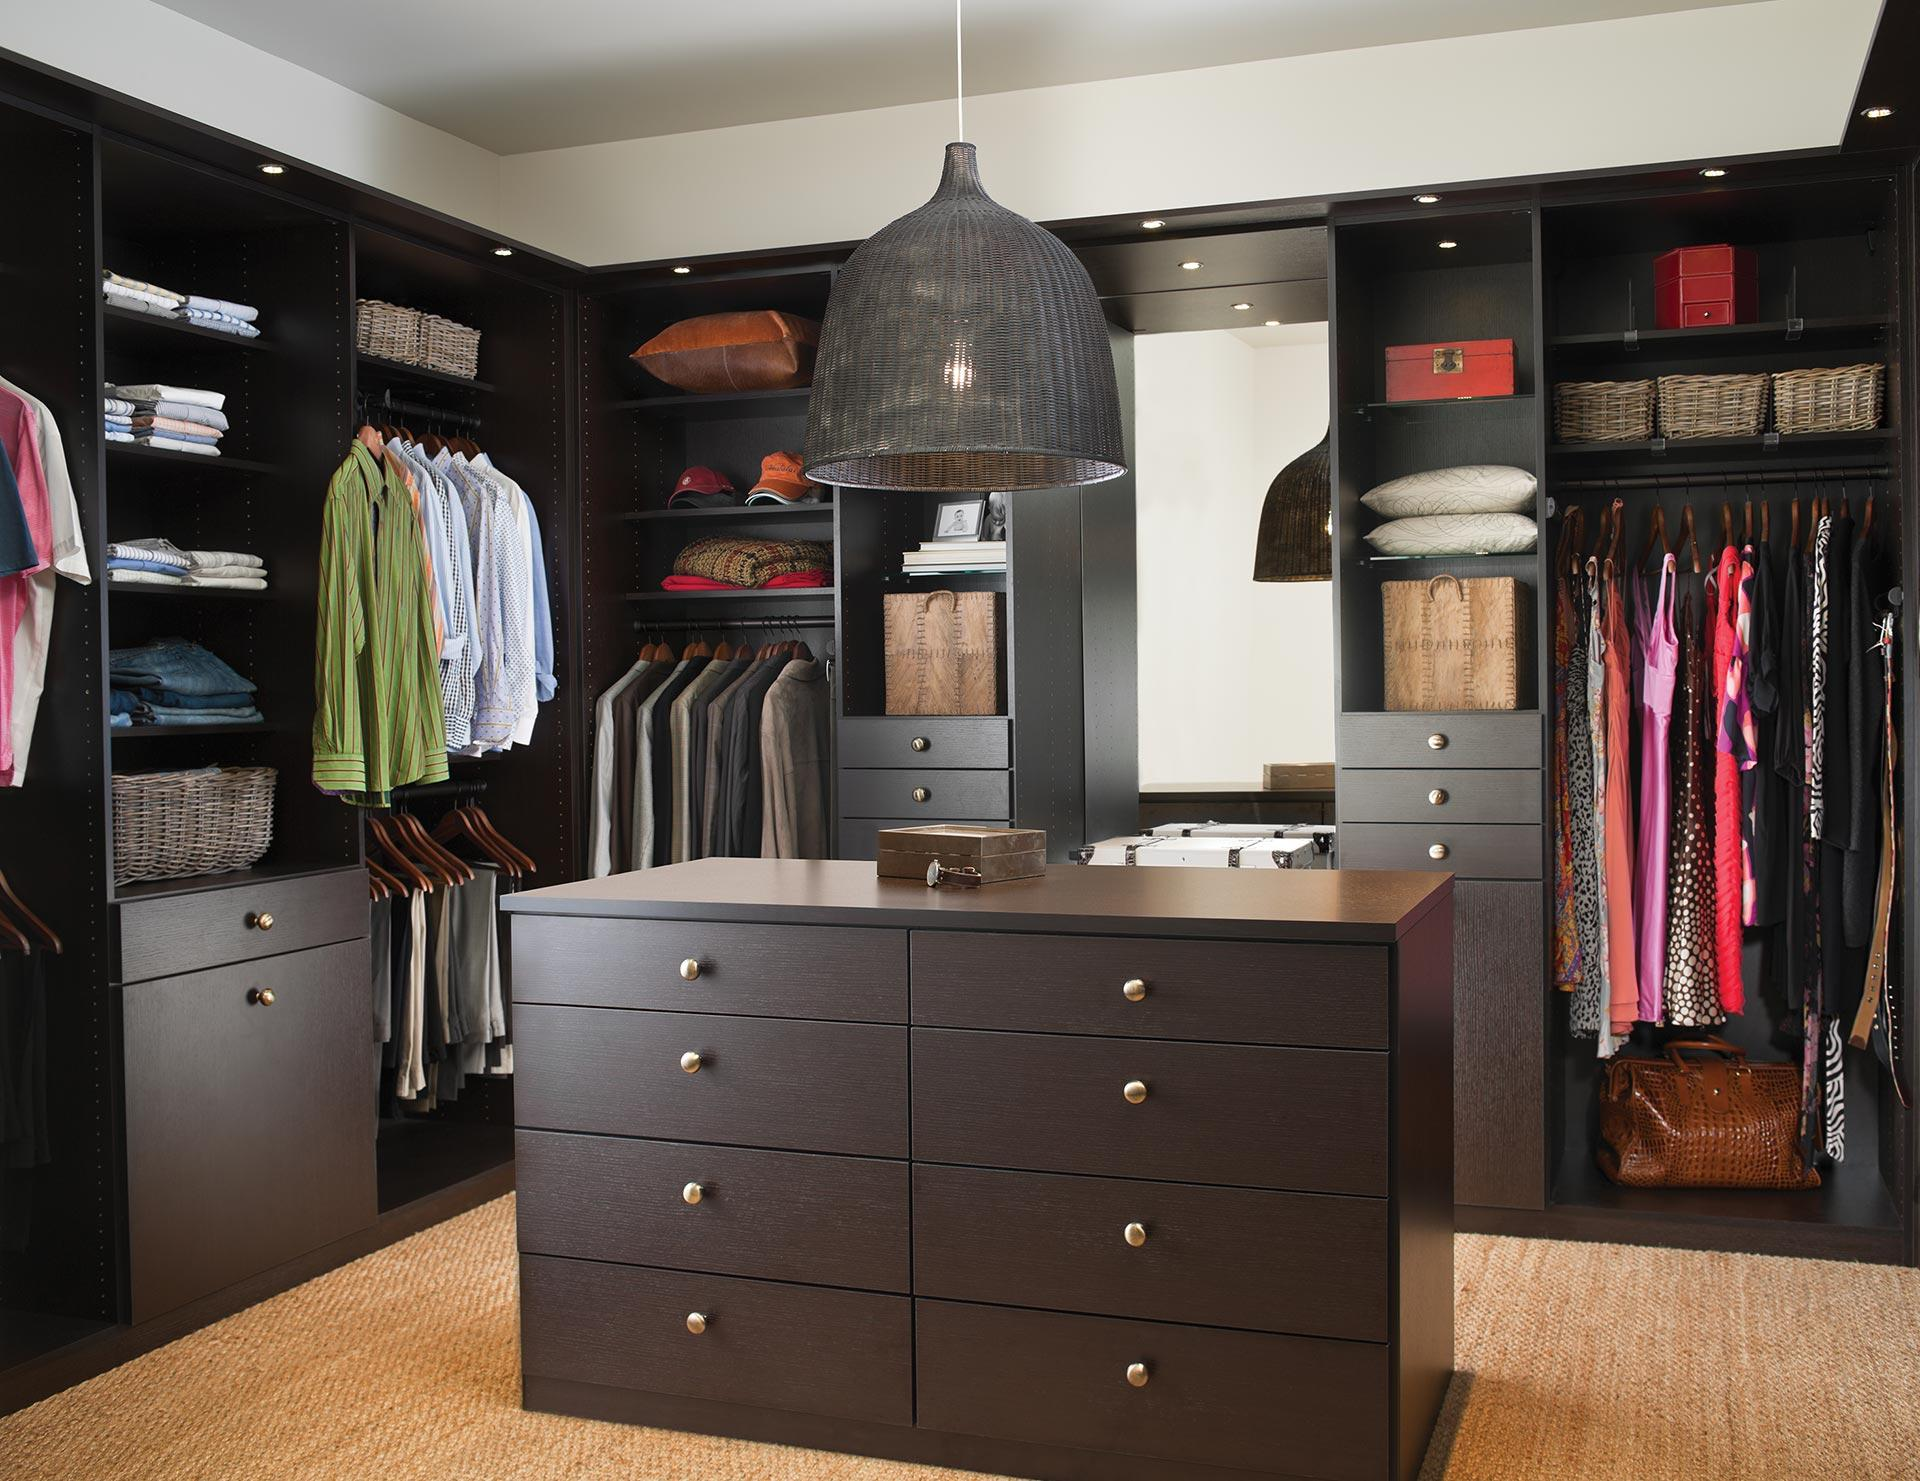 California Closets London - Lee Master Walk in Closet Storage Solution